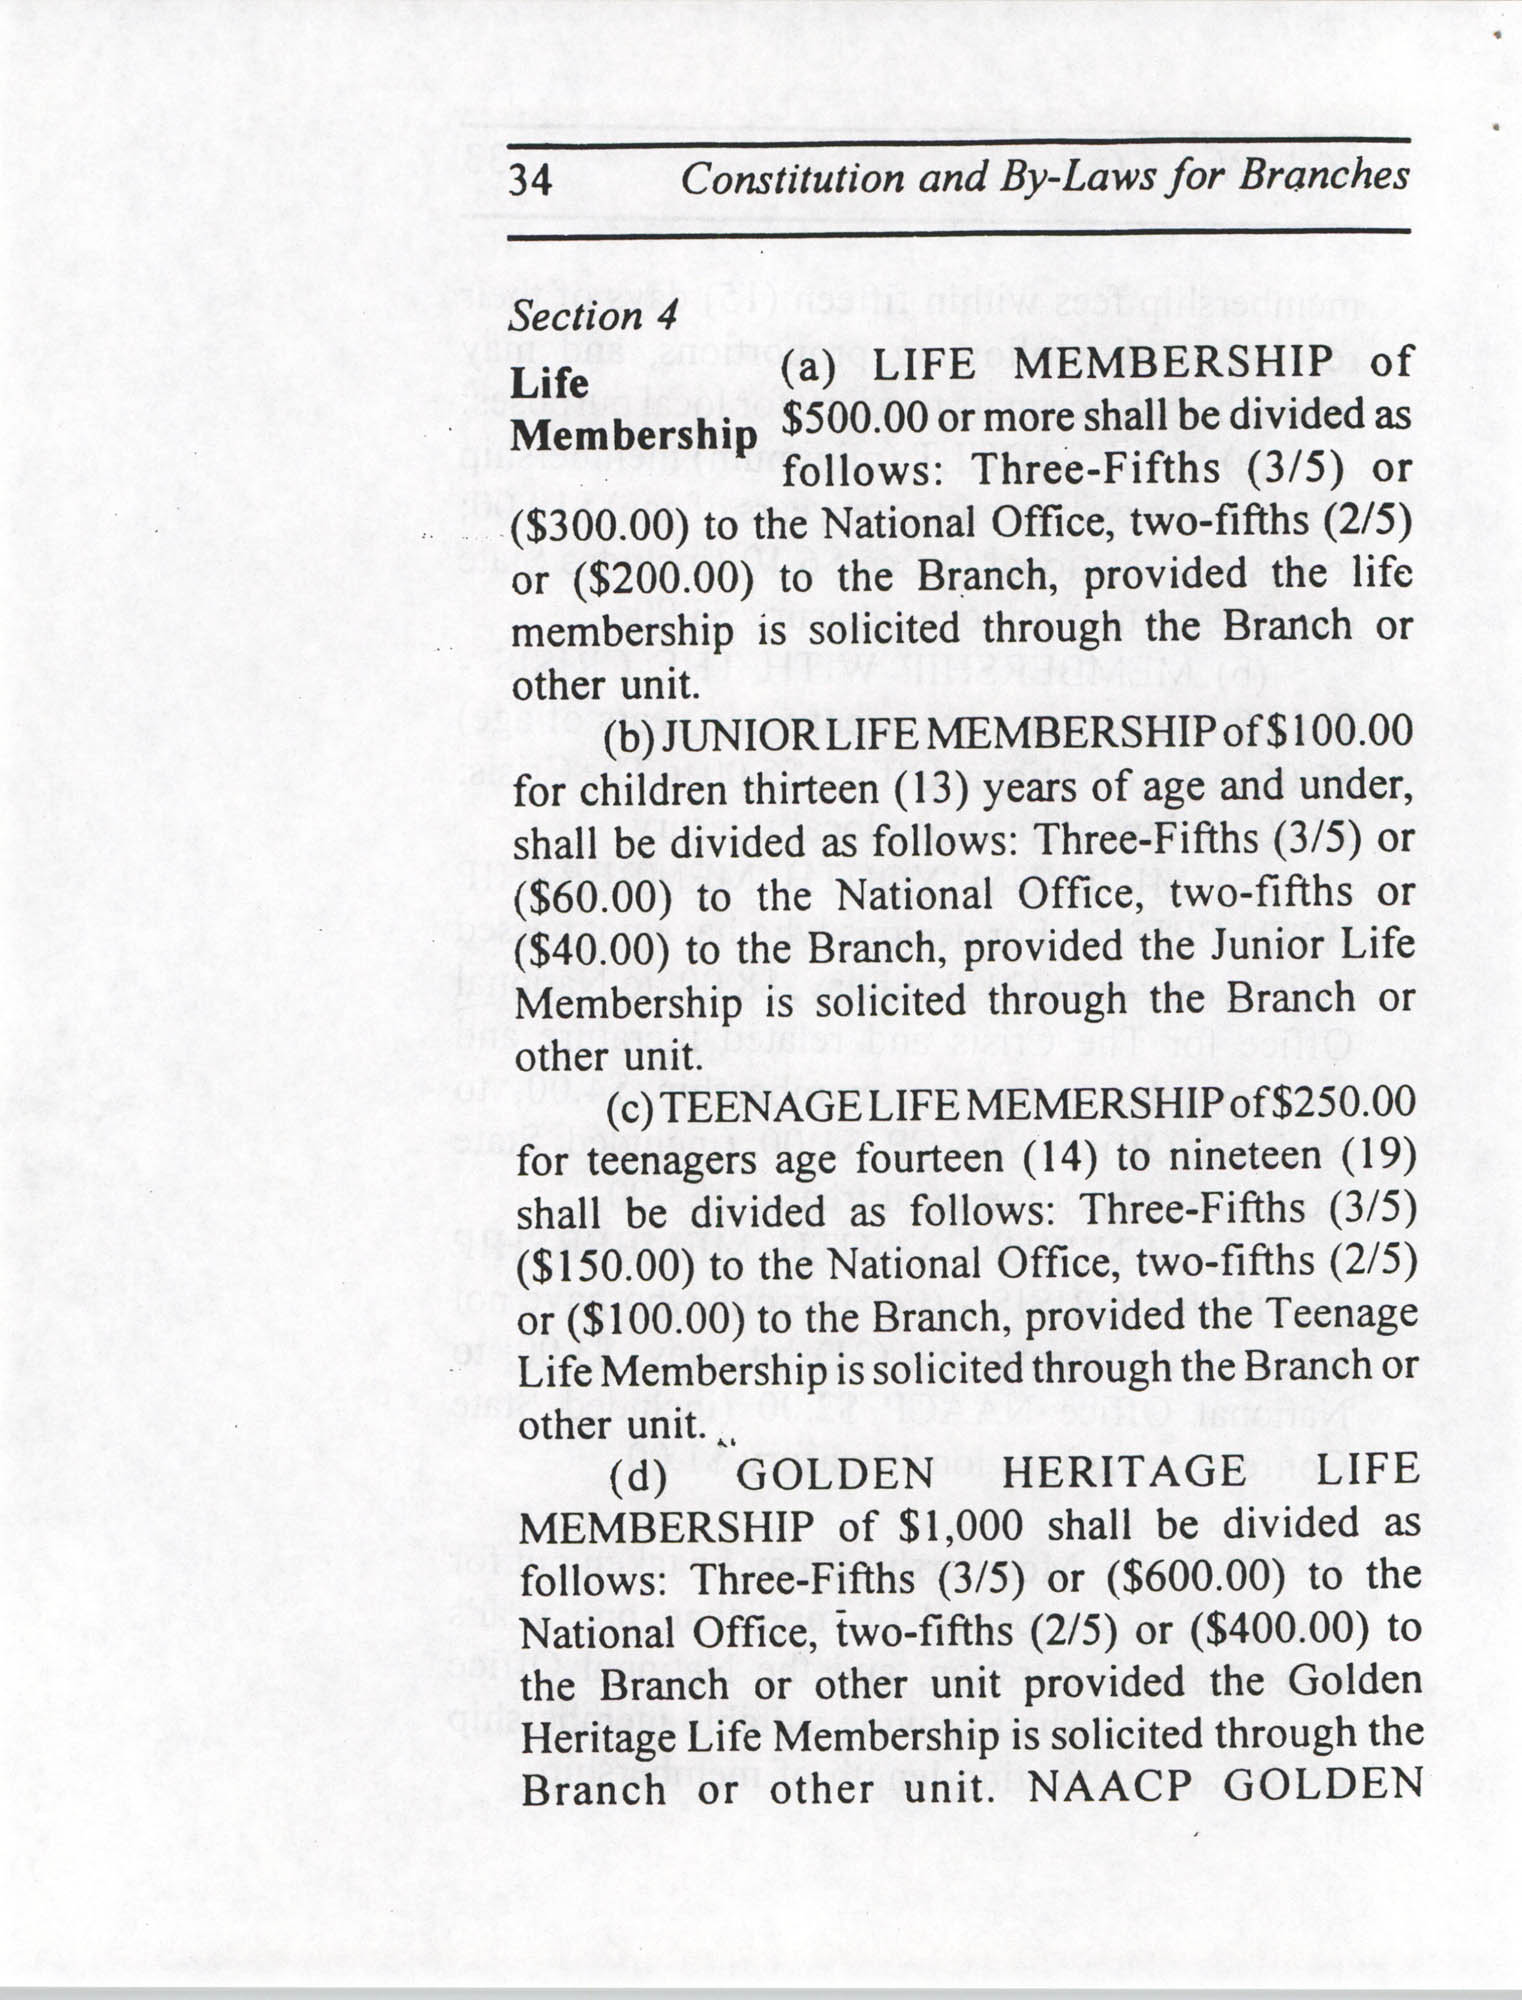 Constitution and By-Laws for Branches of the NAACP, July 1994, Page 34